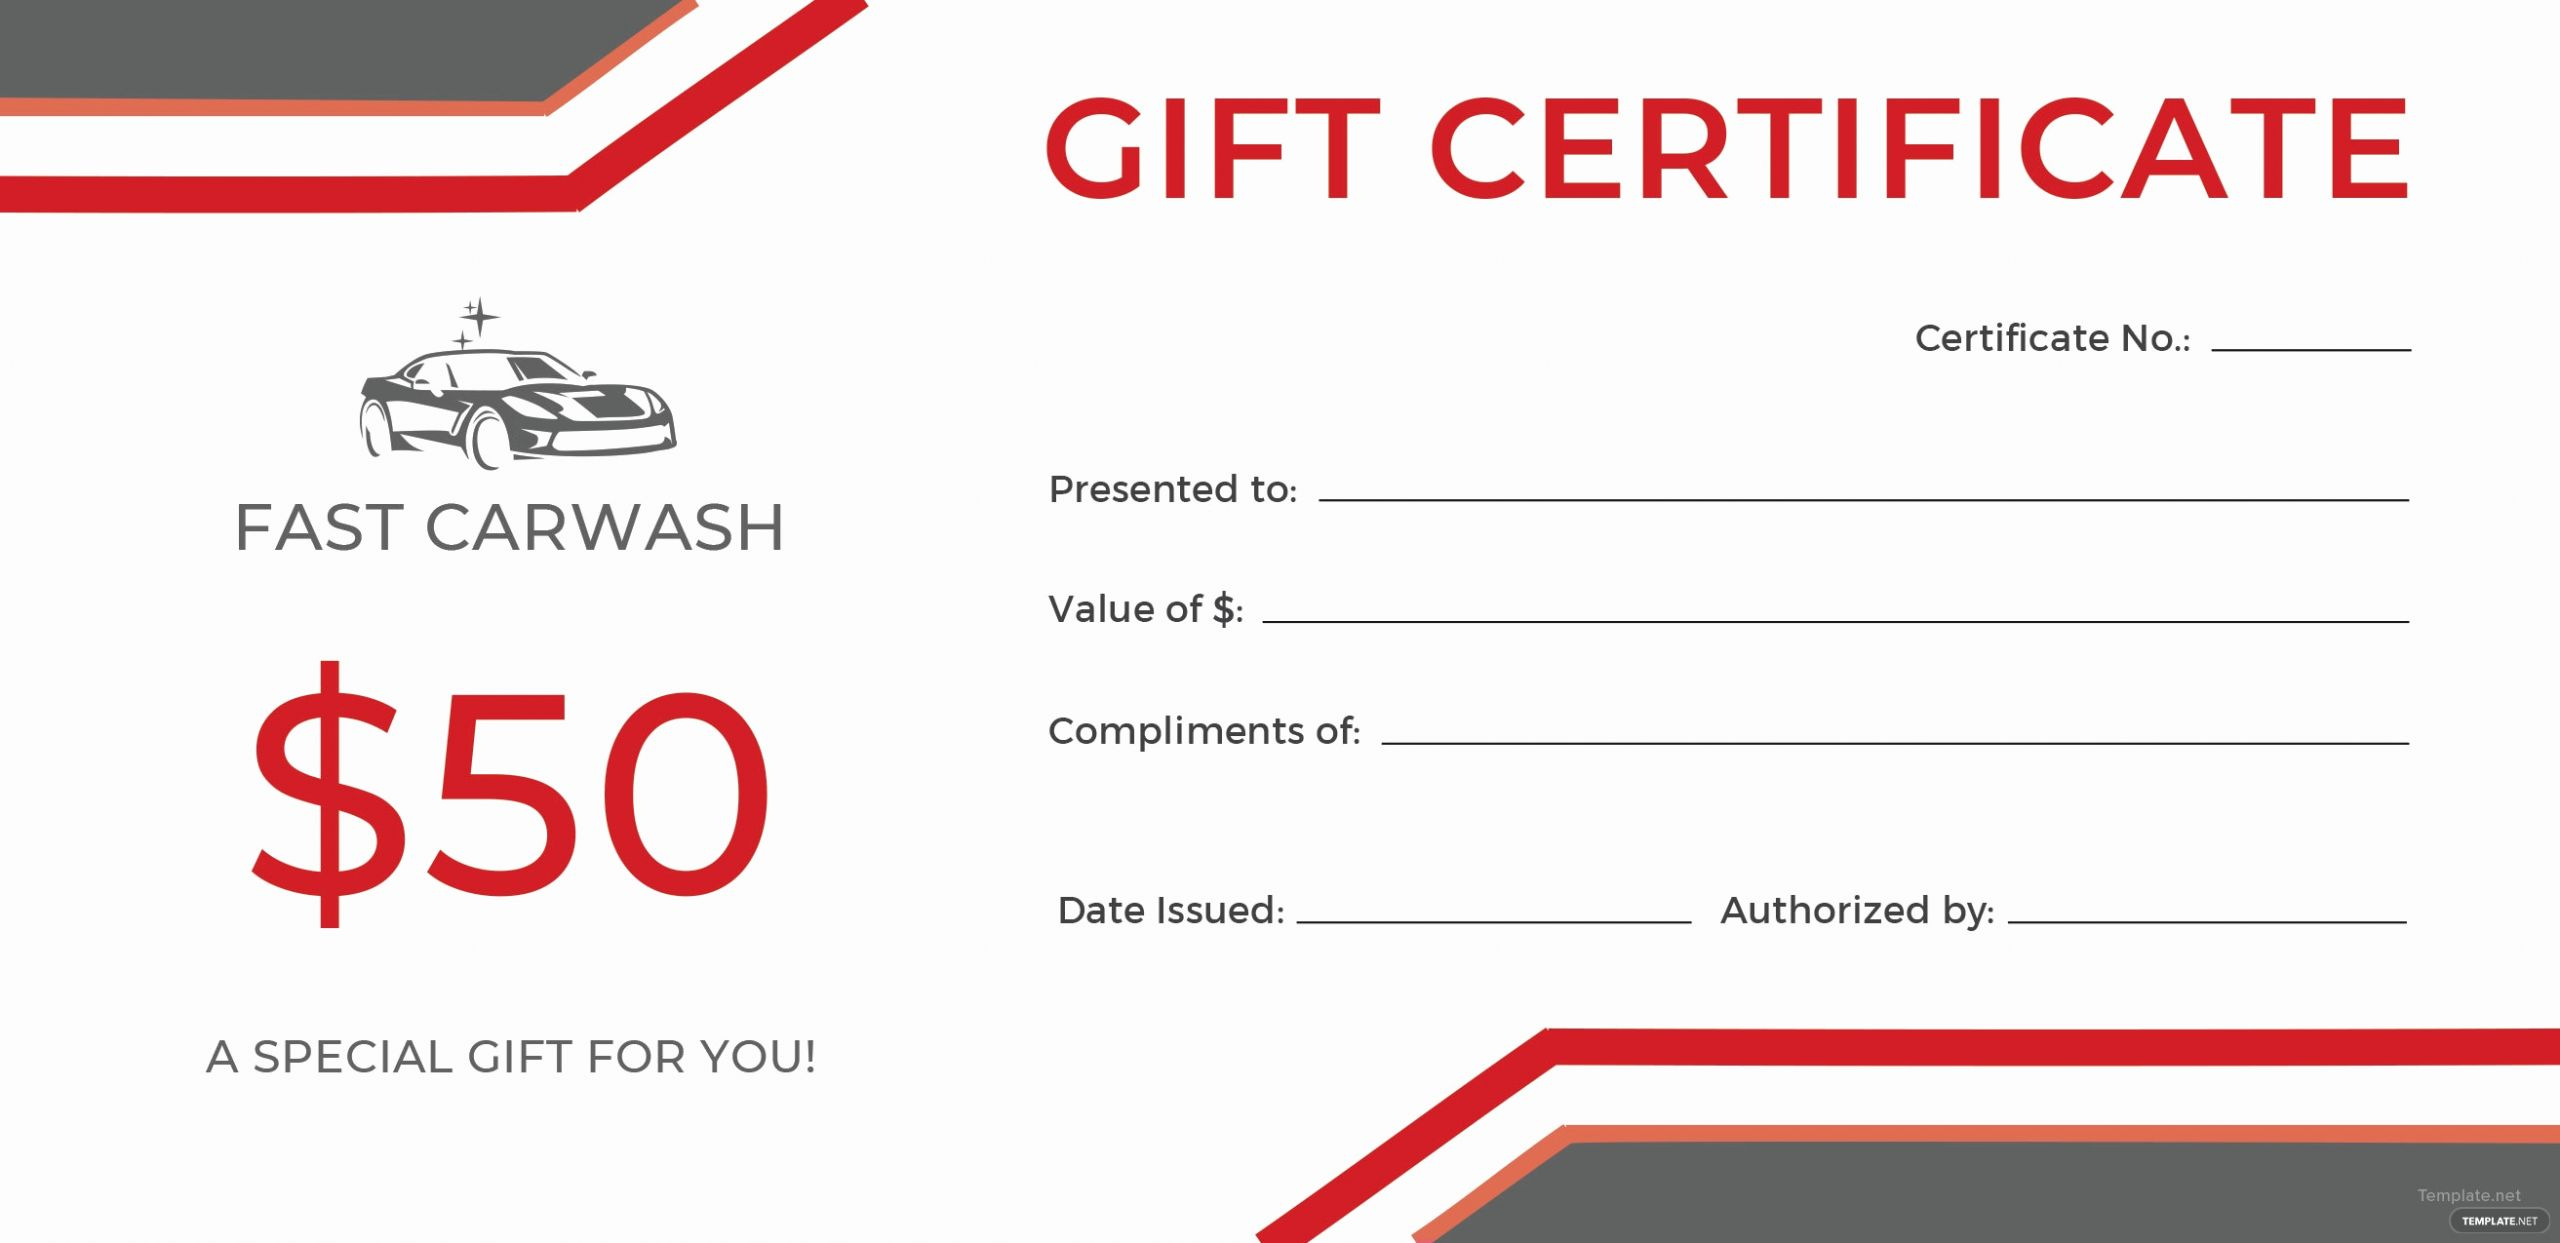 Car Wash Gift Certificate Template Luxury Free Carwash Gift Certificate Template In Adobe